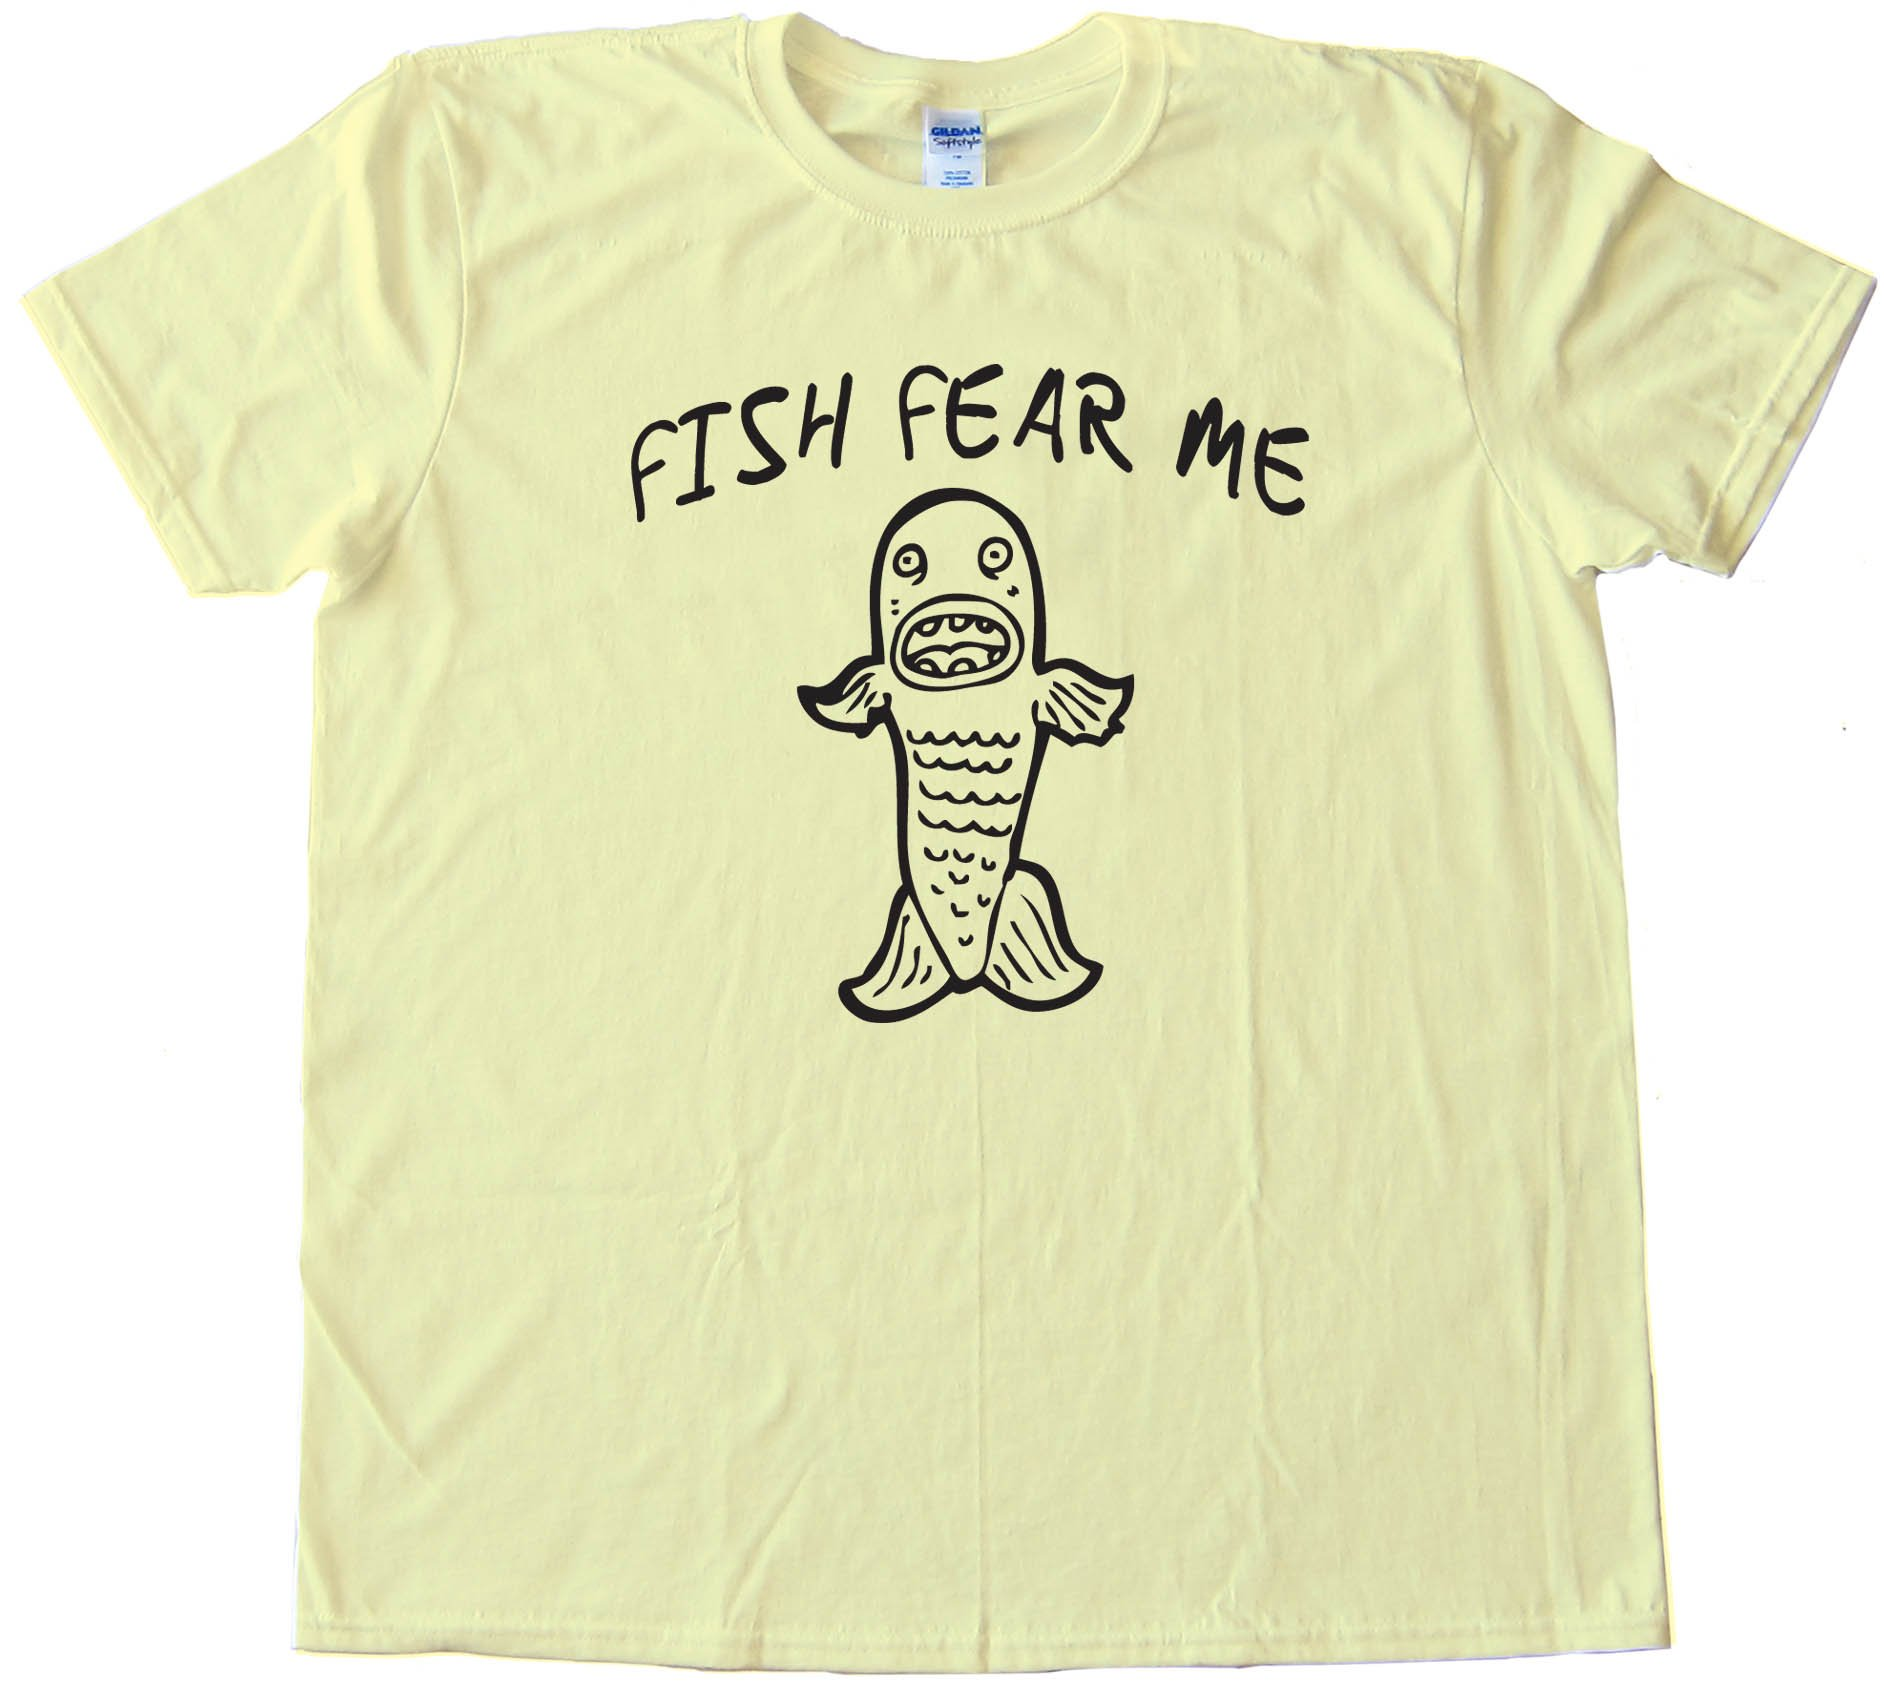 Fish Fear Me - Tee Shirt